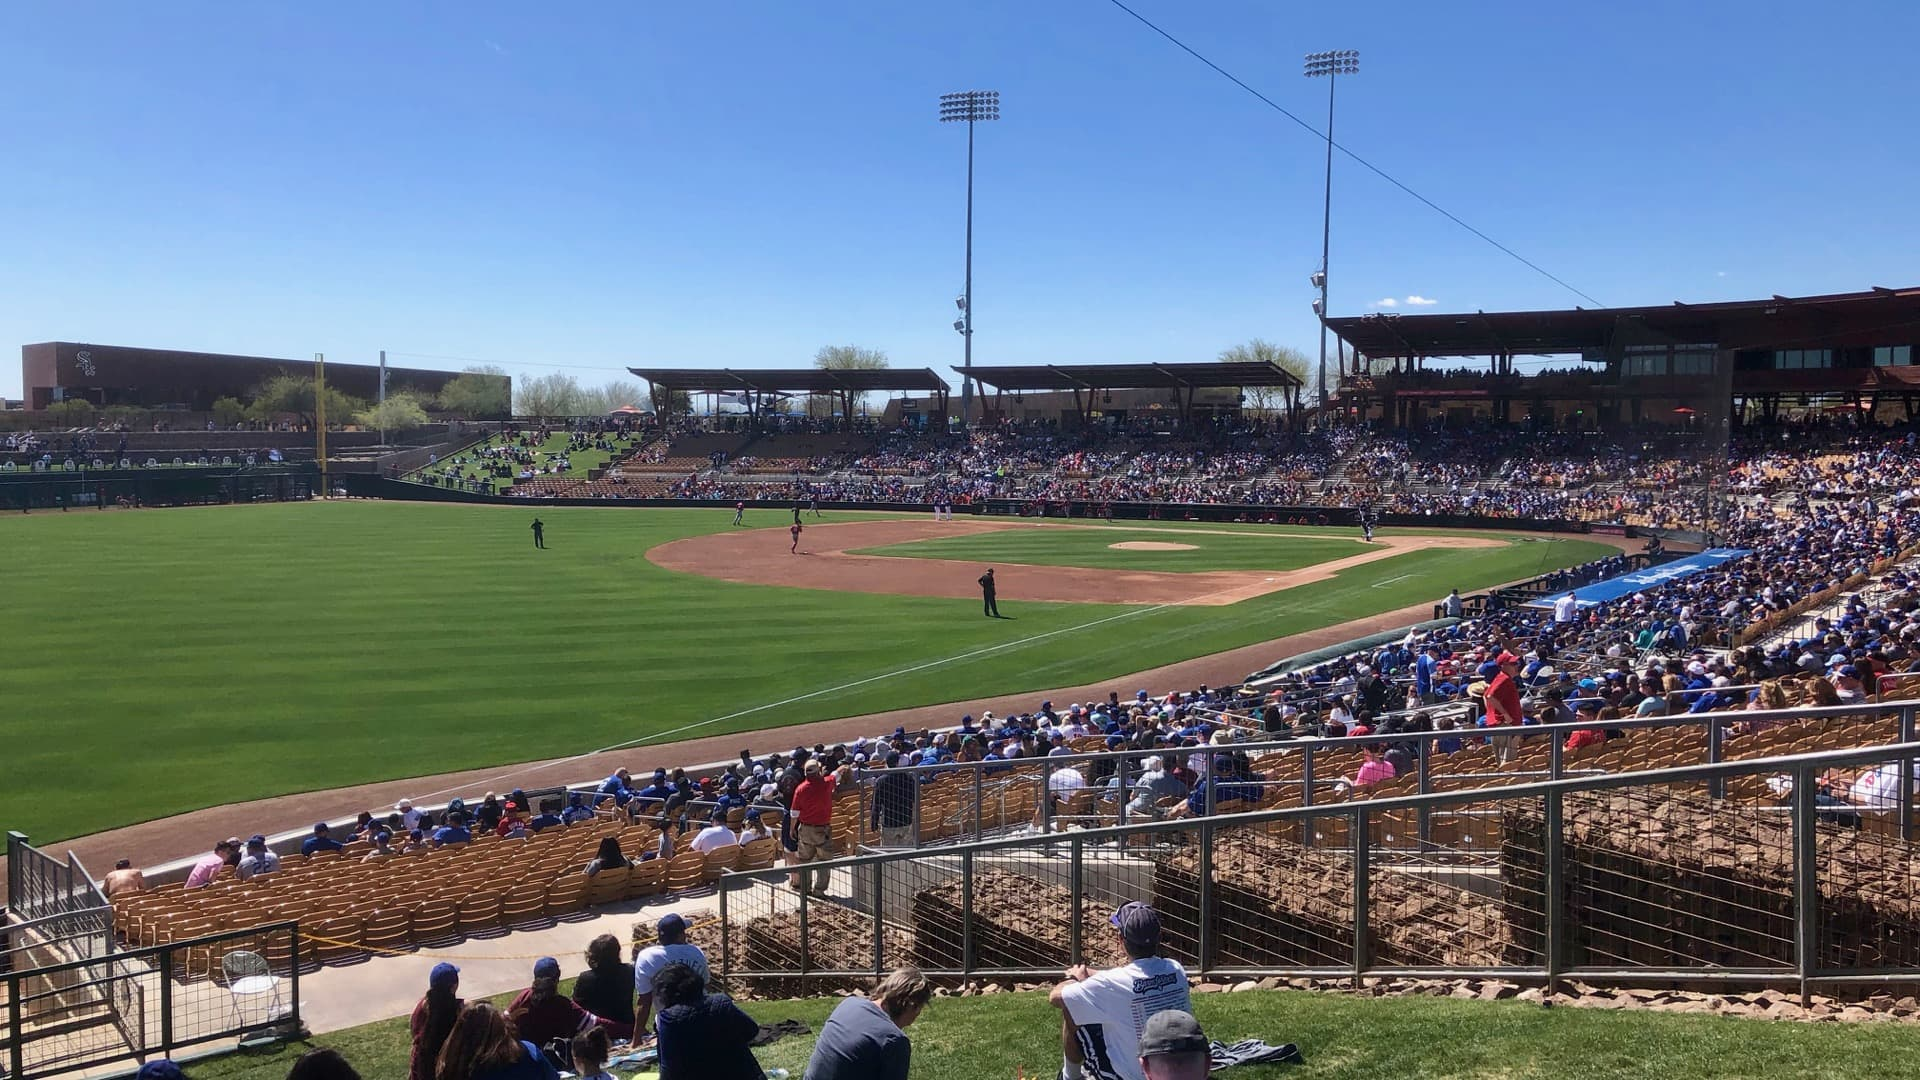 Game happening at Camelback Ranch in Glendale, AZ.